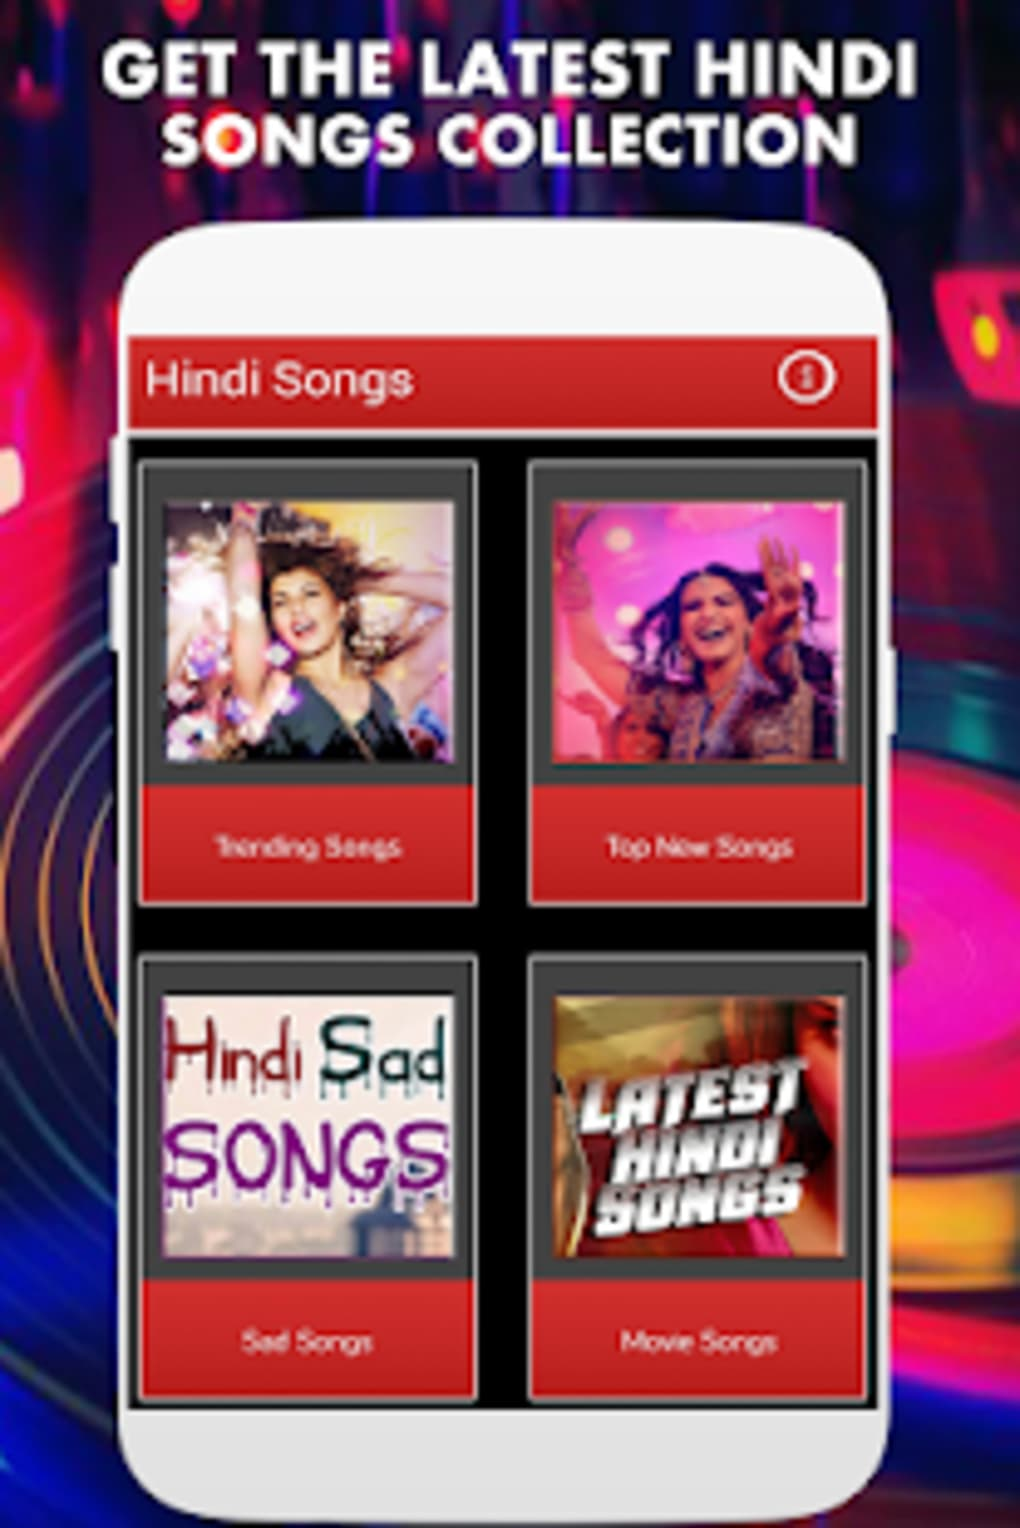 1000 Latest Hindi Songs 2018 - MP3 APK for Android - Download